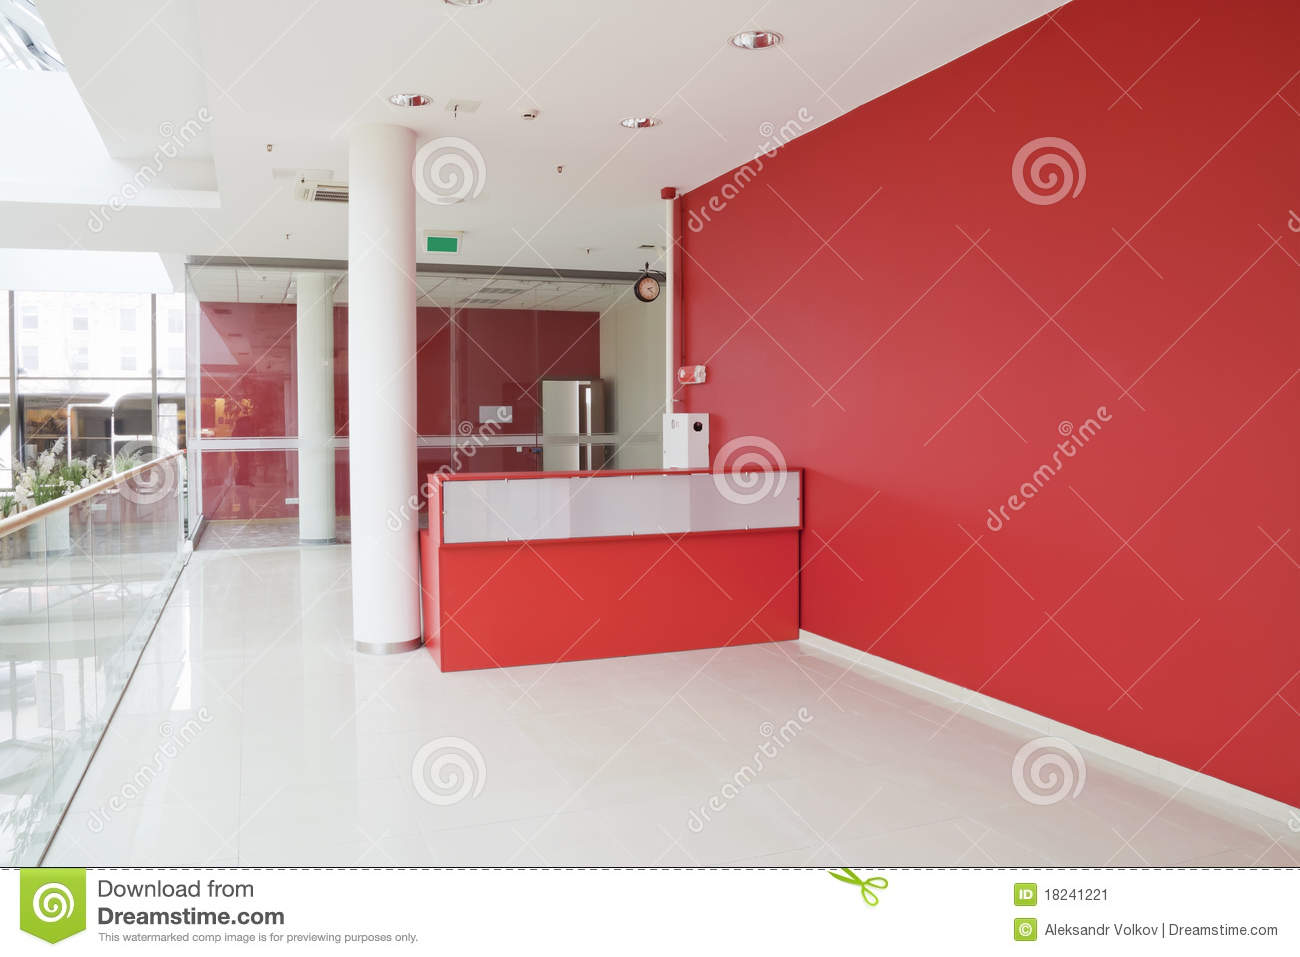 Grand mur rouge au bureau moderne image stock image for Grand bureau moderne